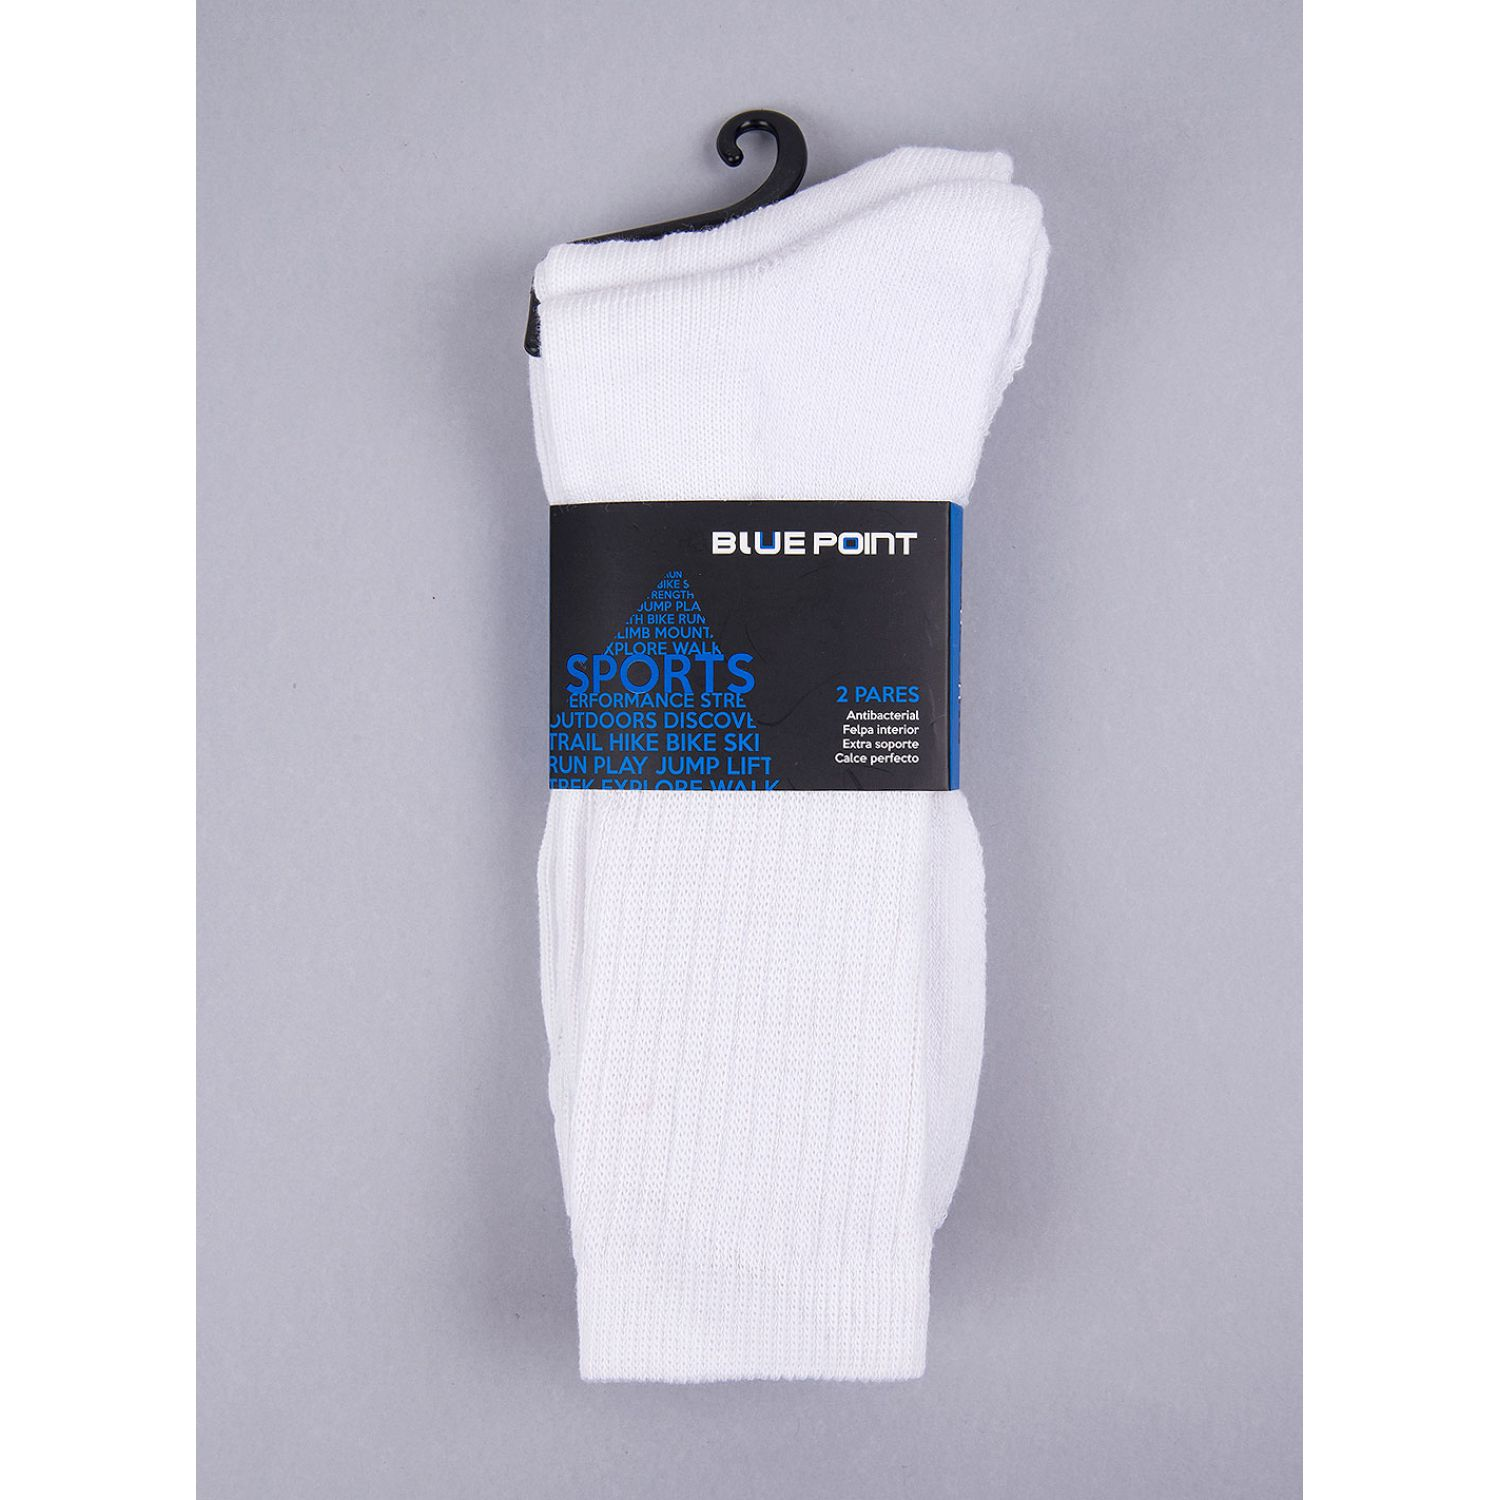 SISI PACK X 2 CREW SPORT White Calcetines